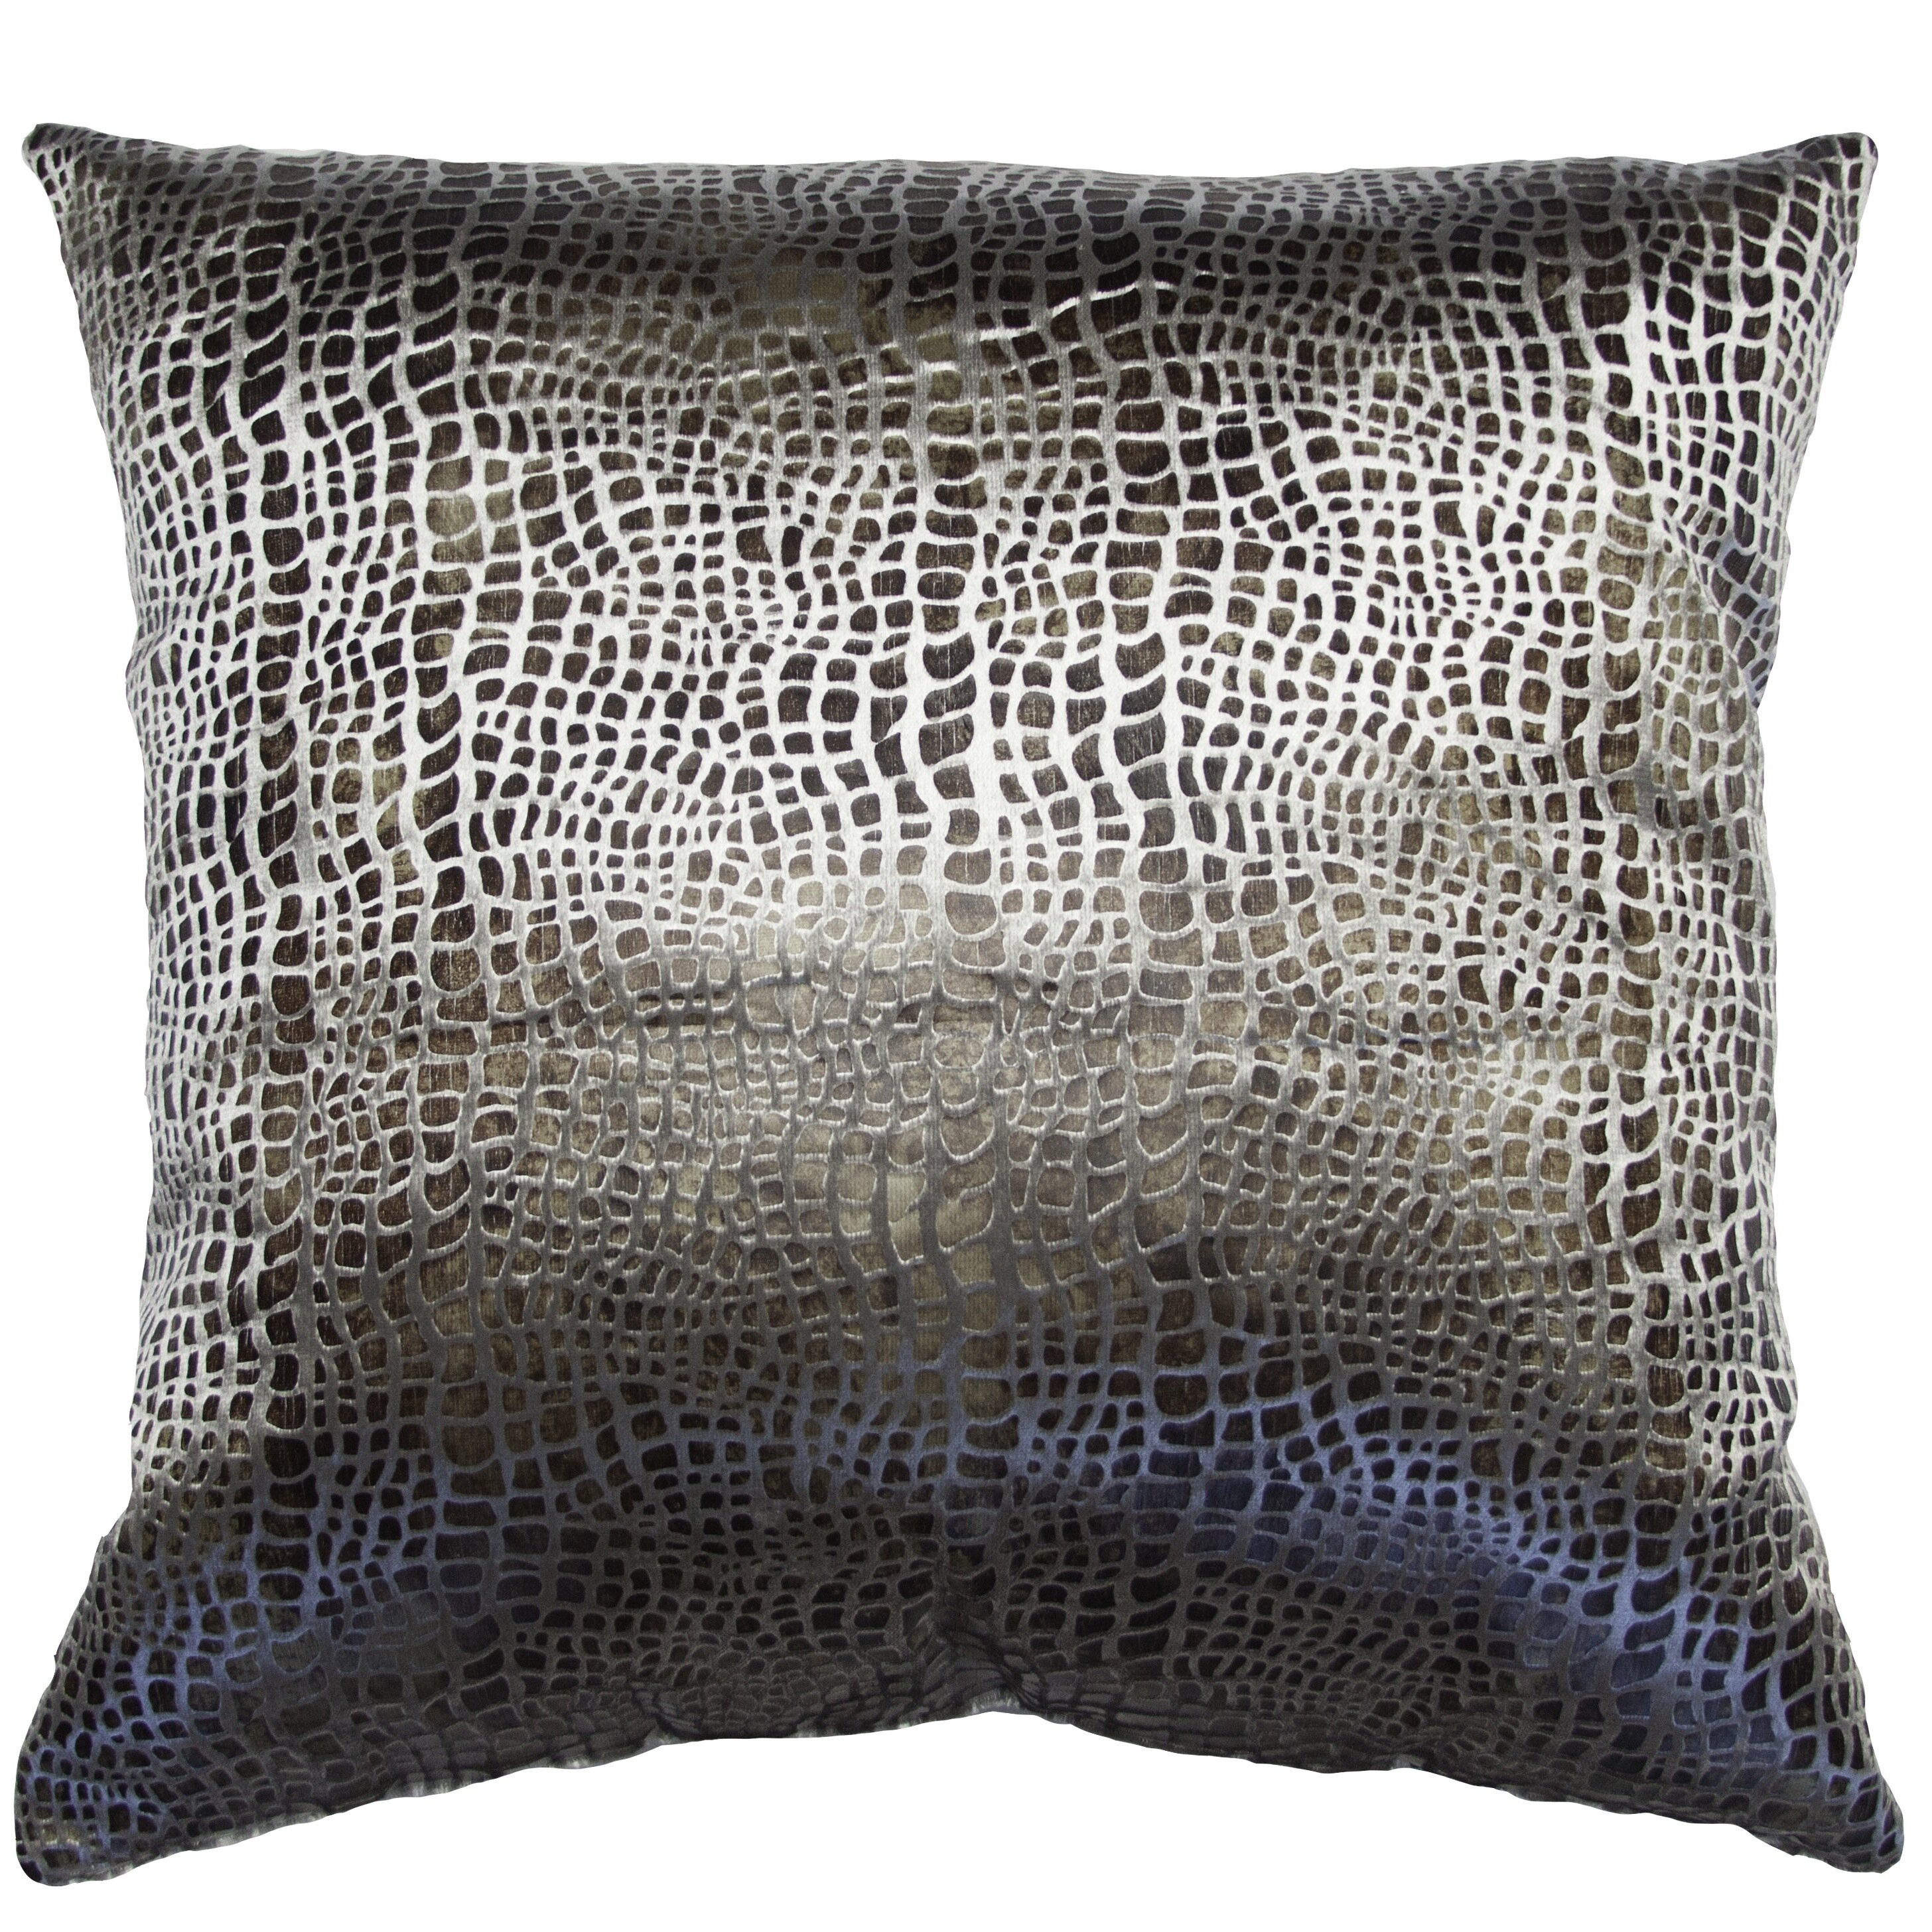 Square Feathers Milan Exotic Feathers Animal Print Pillow Perigold